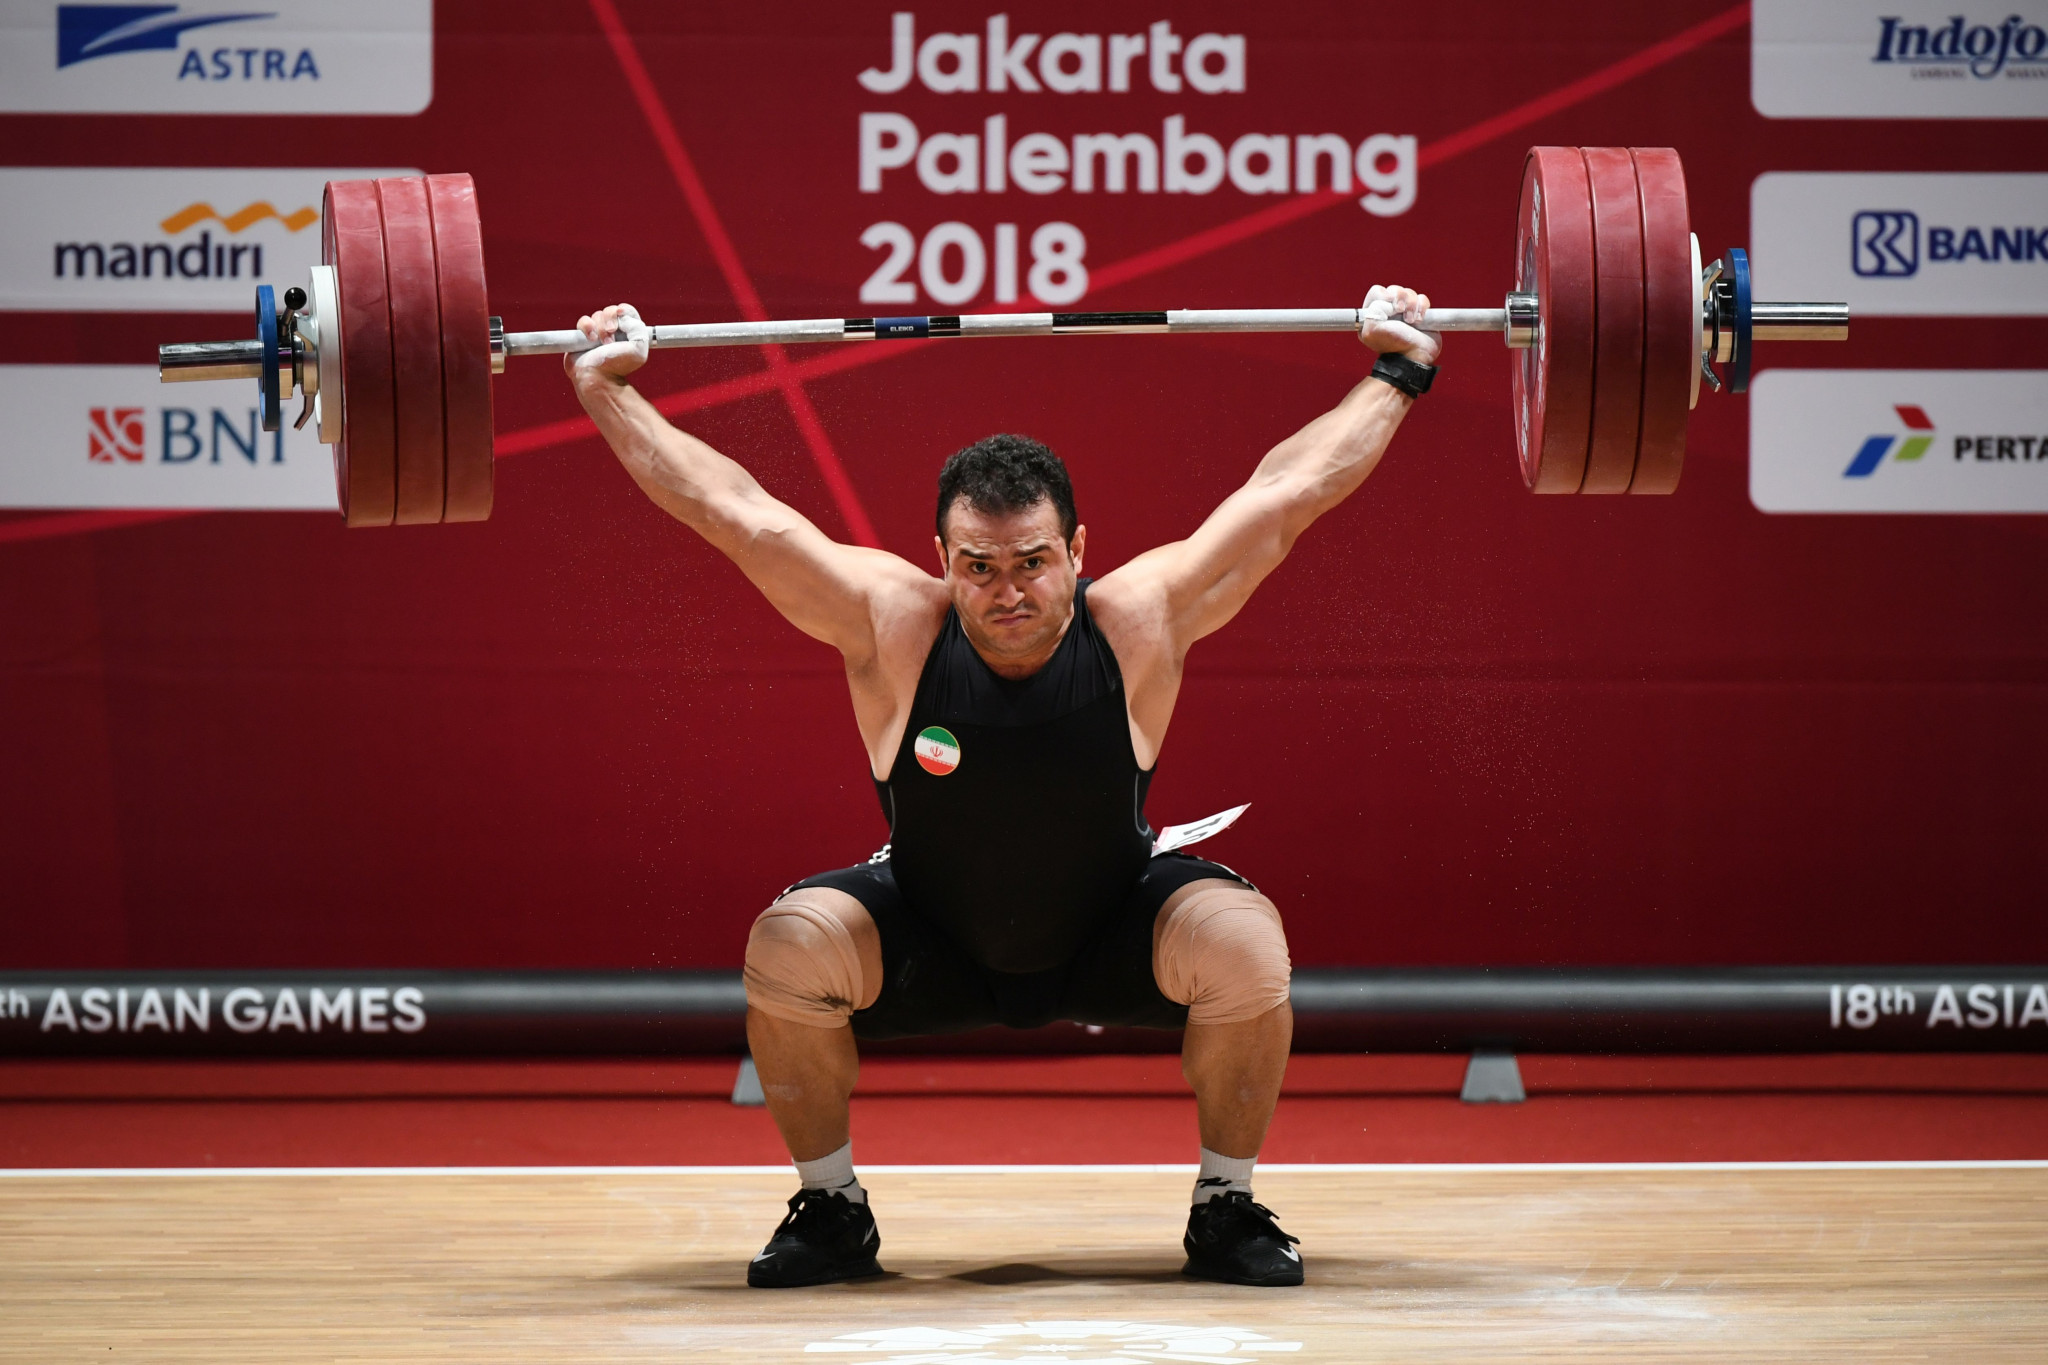 Olympic champion Sohrab Moradi's hopes of qualifying for Tokyo 2020 have taken a further blow ©Getty Images